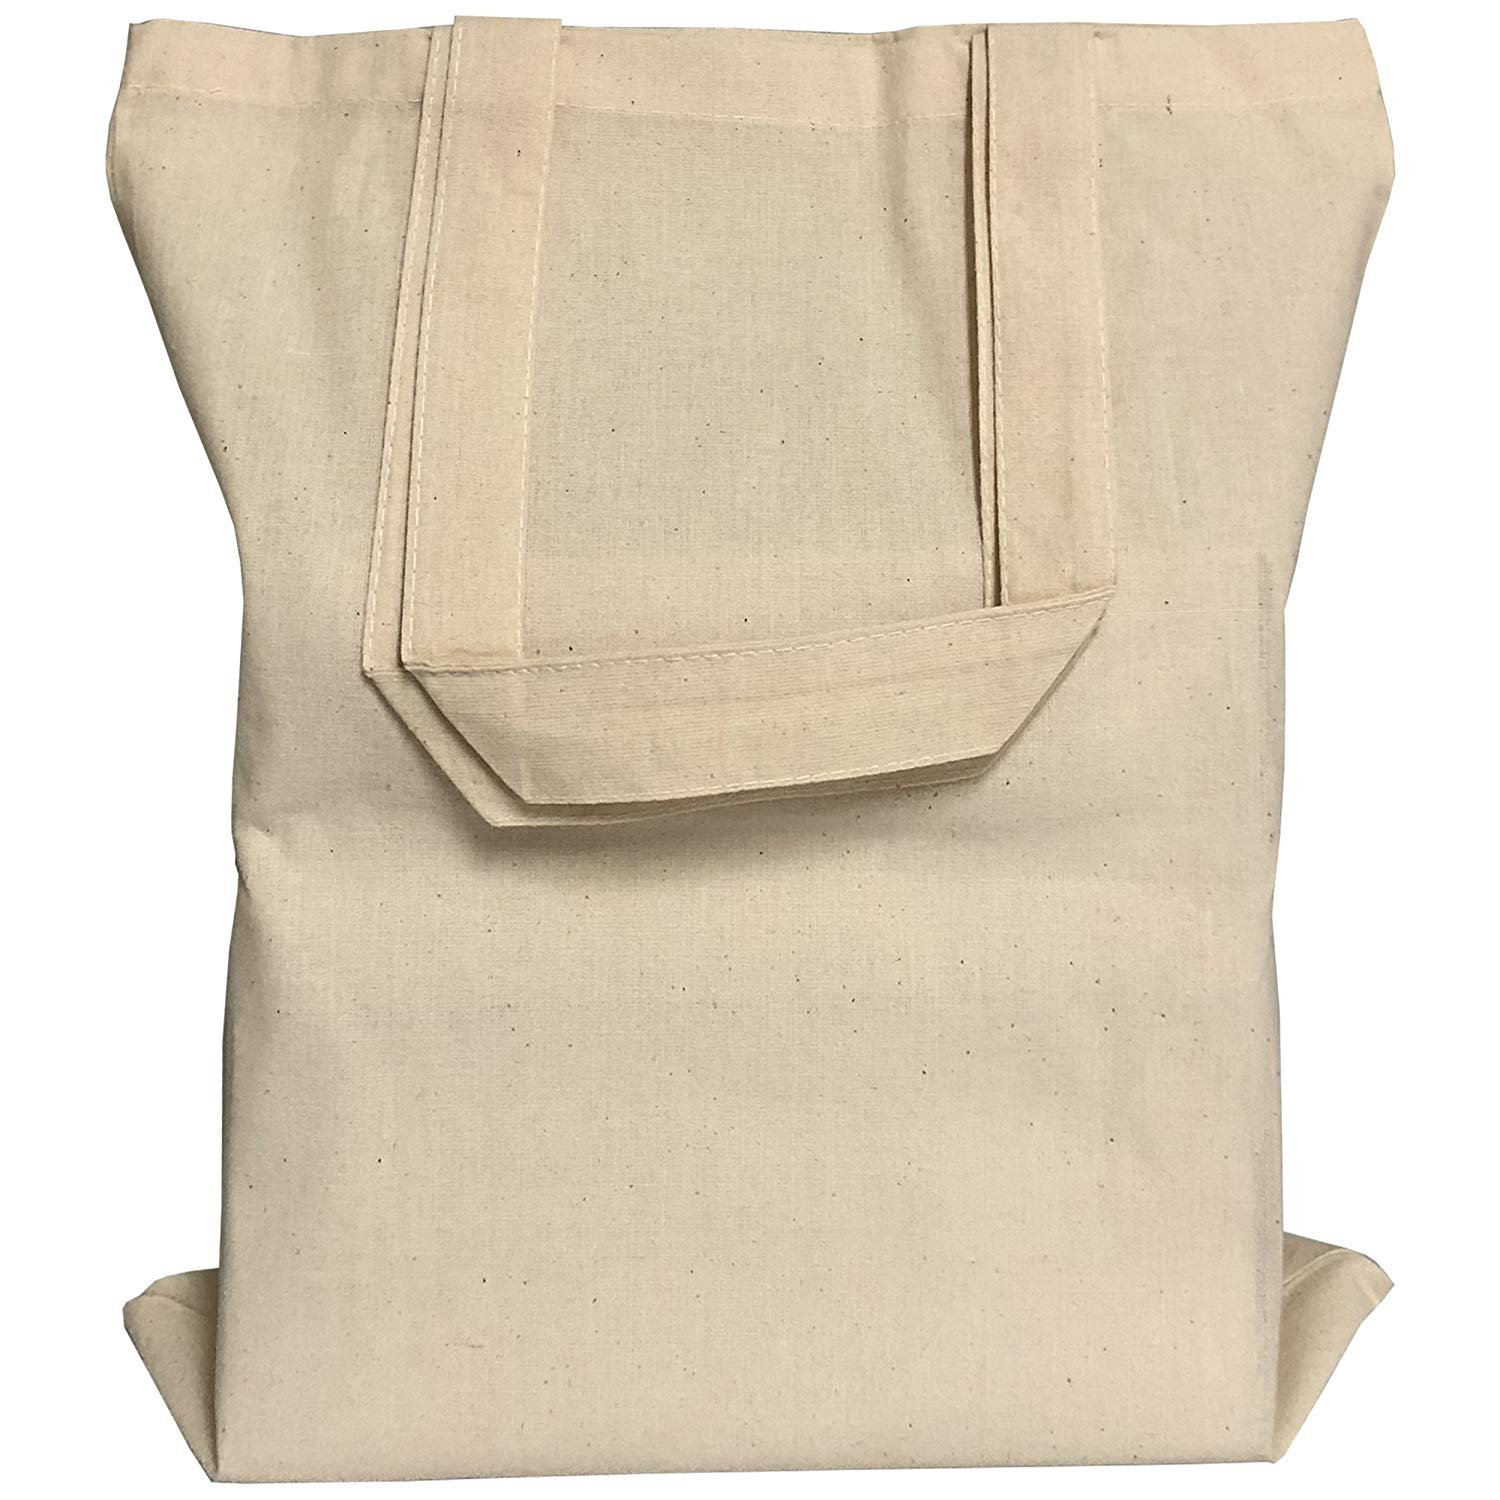 5f1e0bd53fce BagzDepot 24 PACK Cotton Canvas Reusable 15 inch by 16 inch Blank  Promotional Wholesale Tote Bags